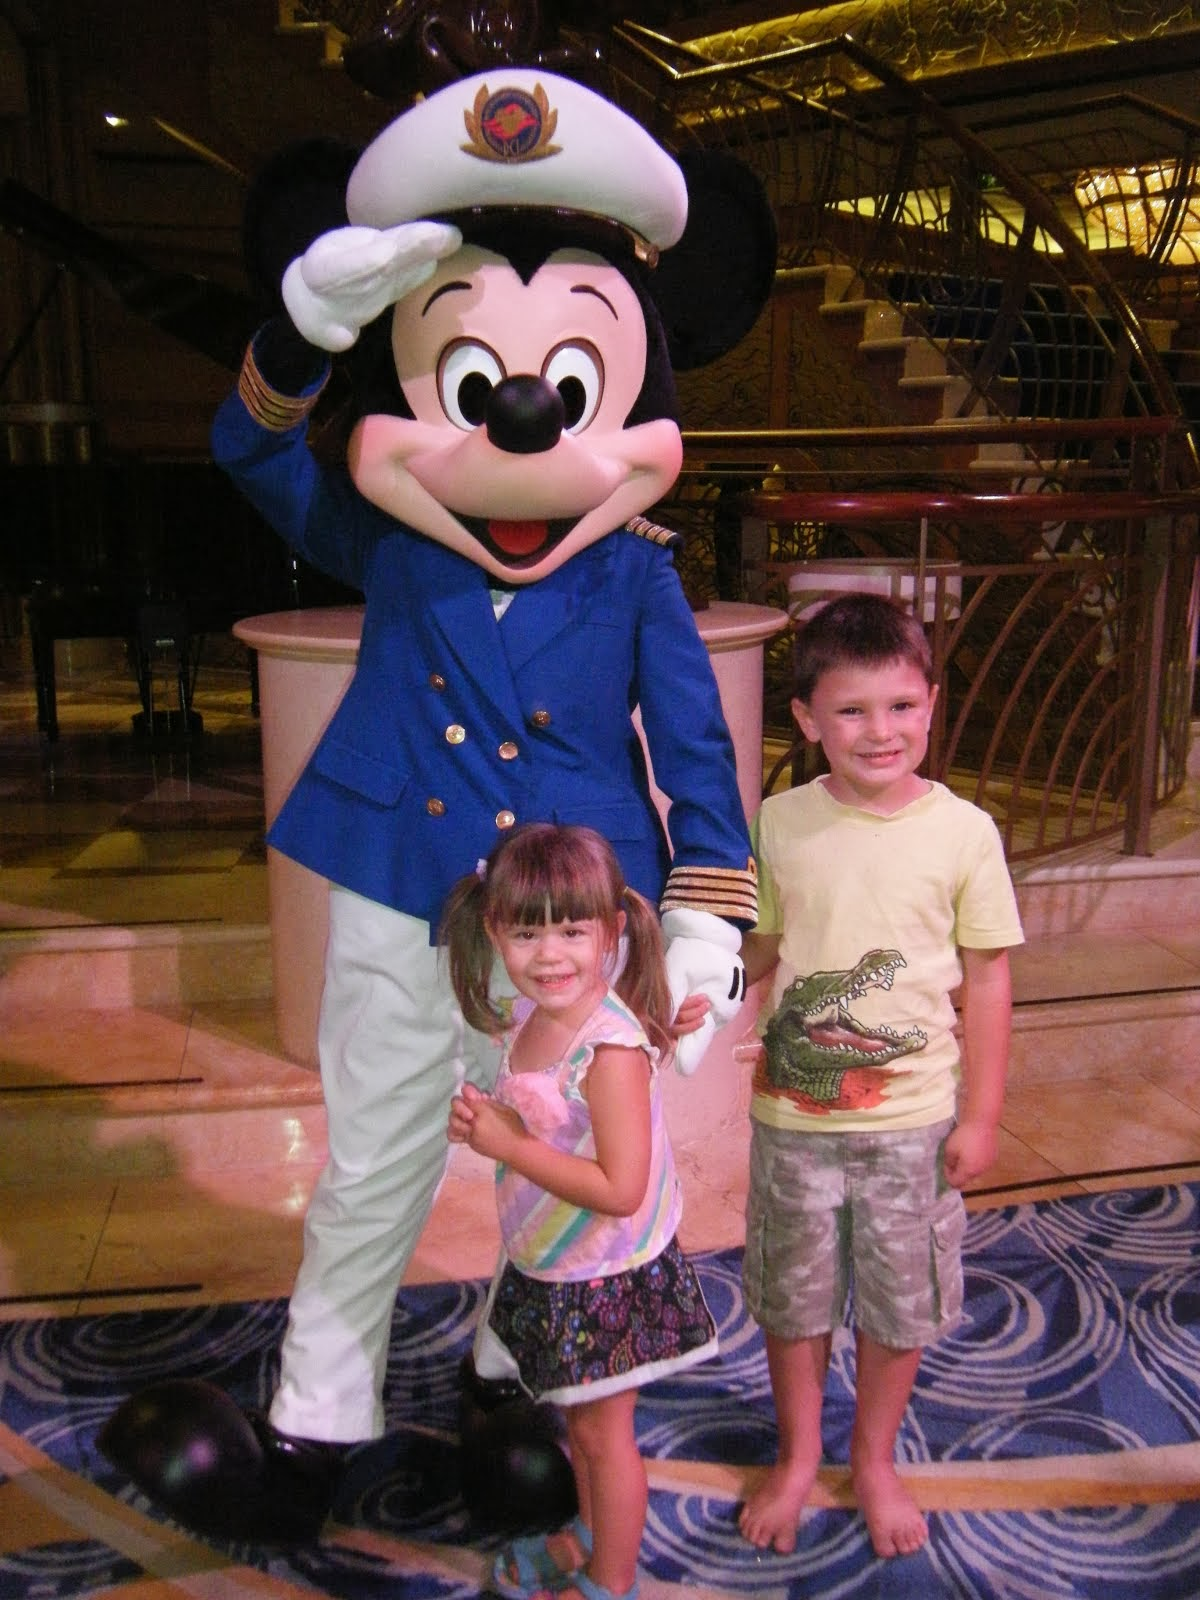 Meeting Captain Mickey